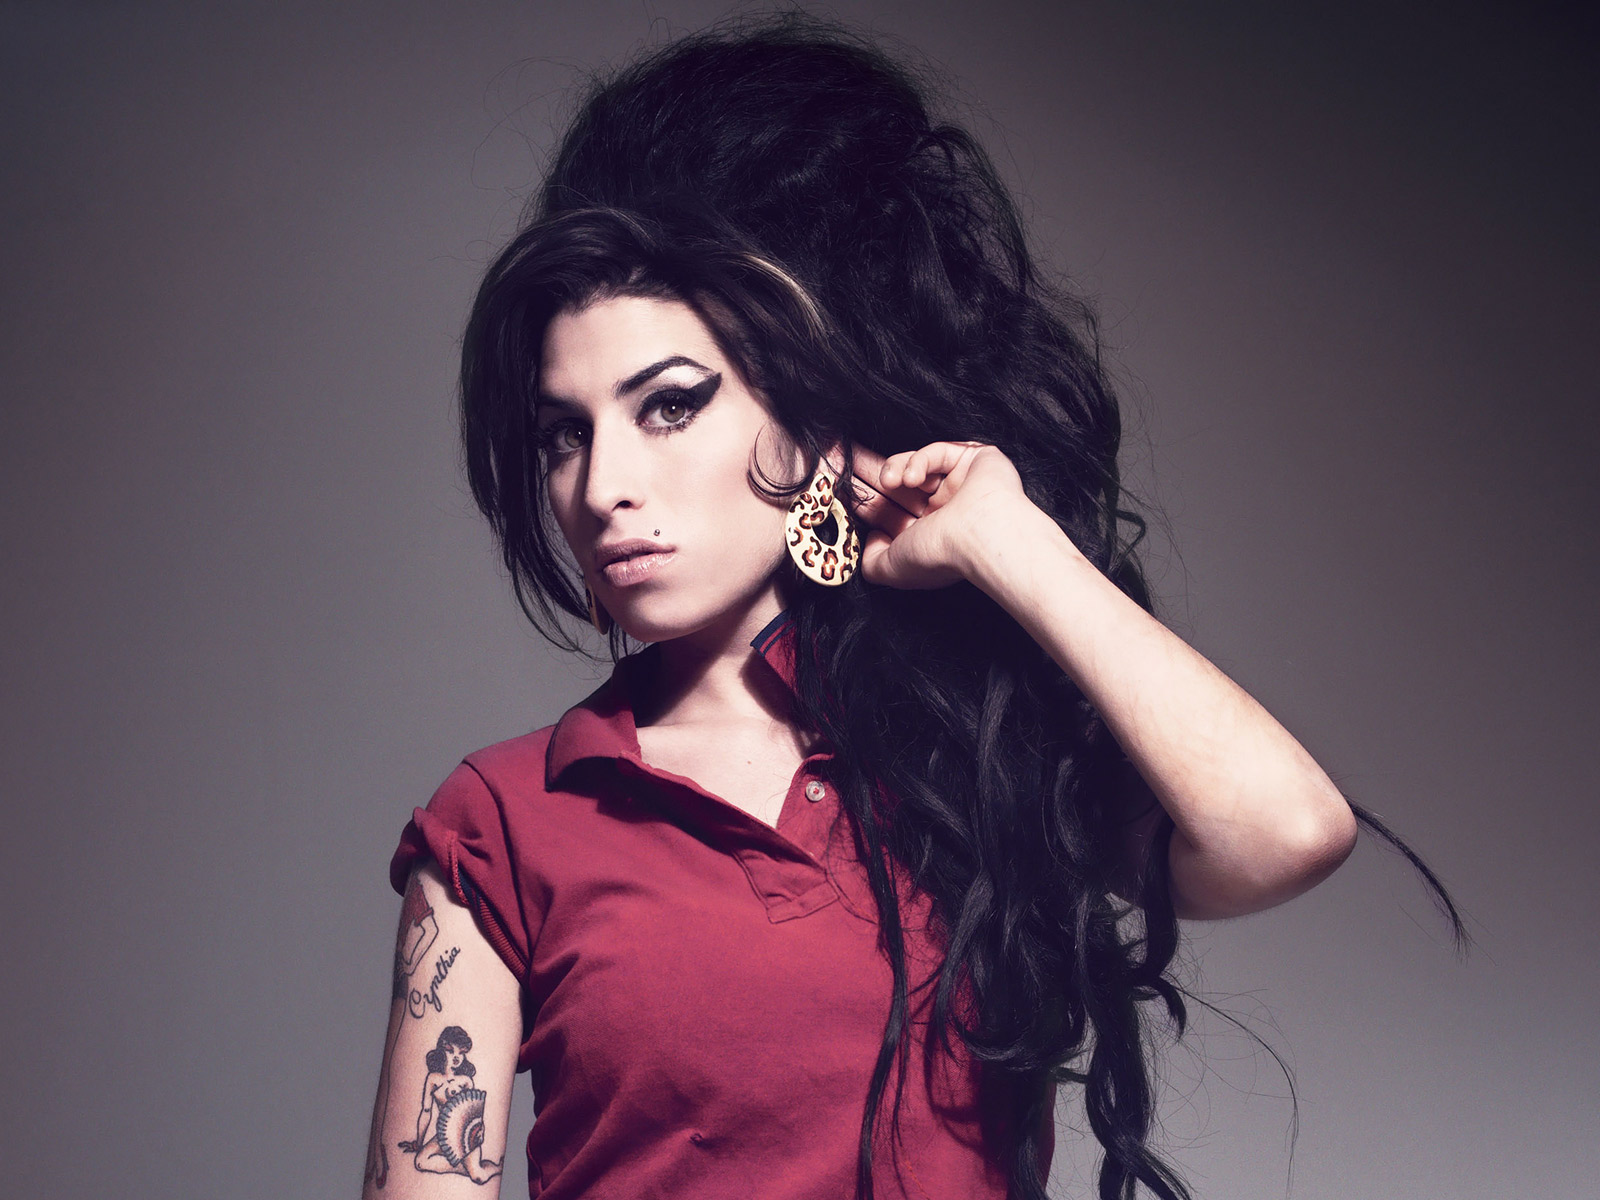 amy winehouse 32915 1600x1200px